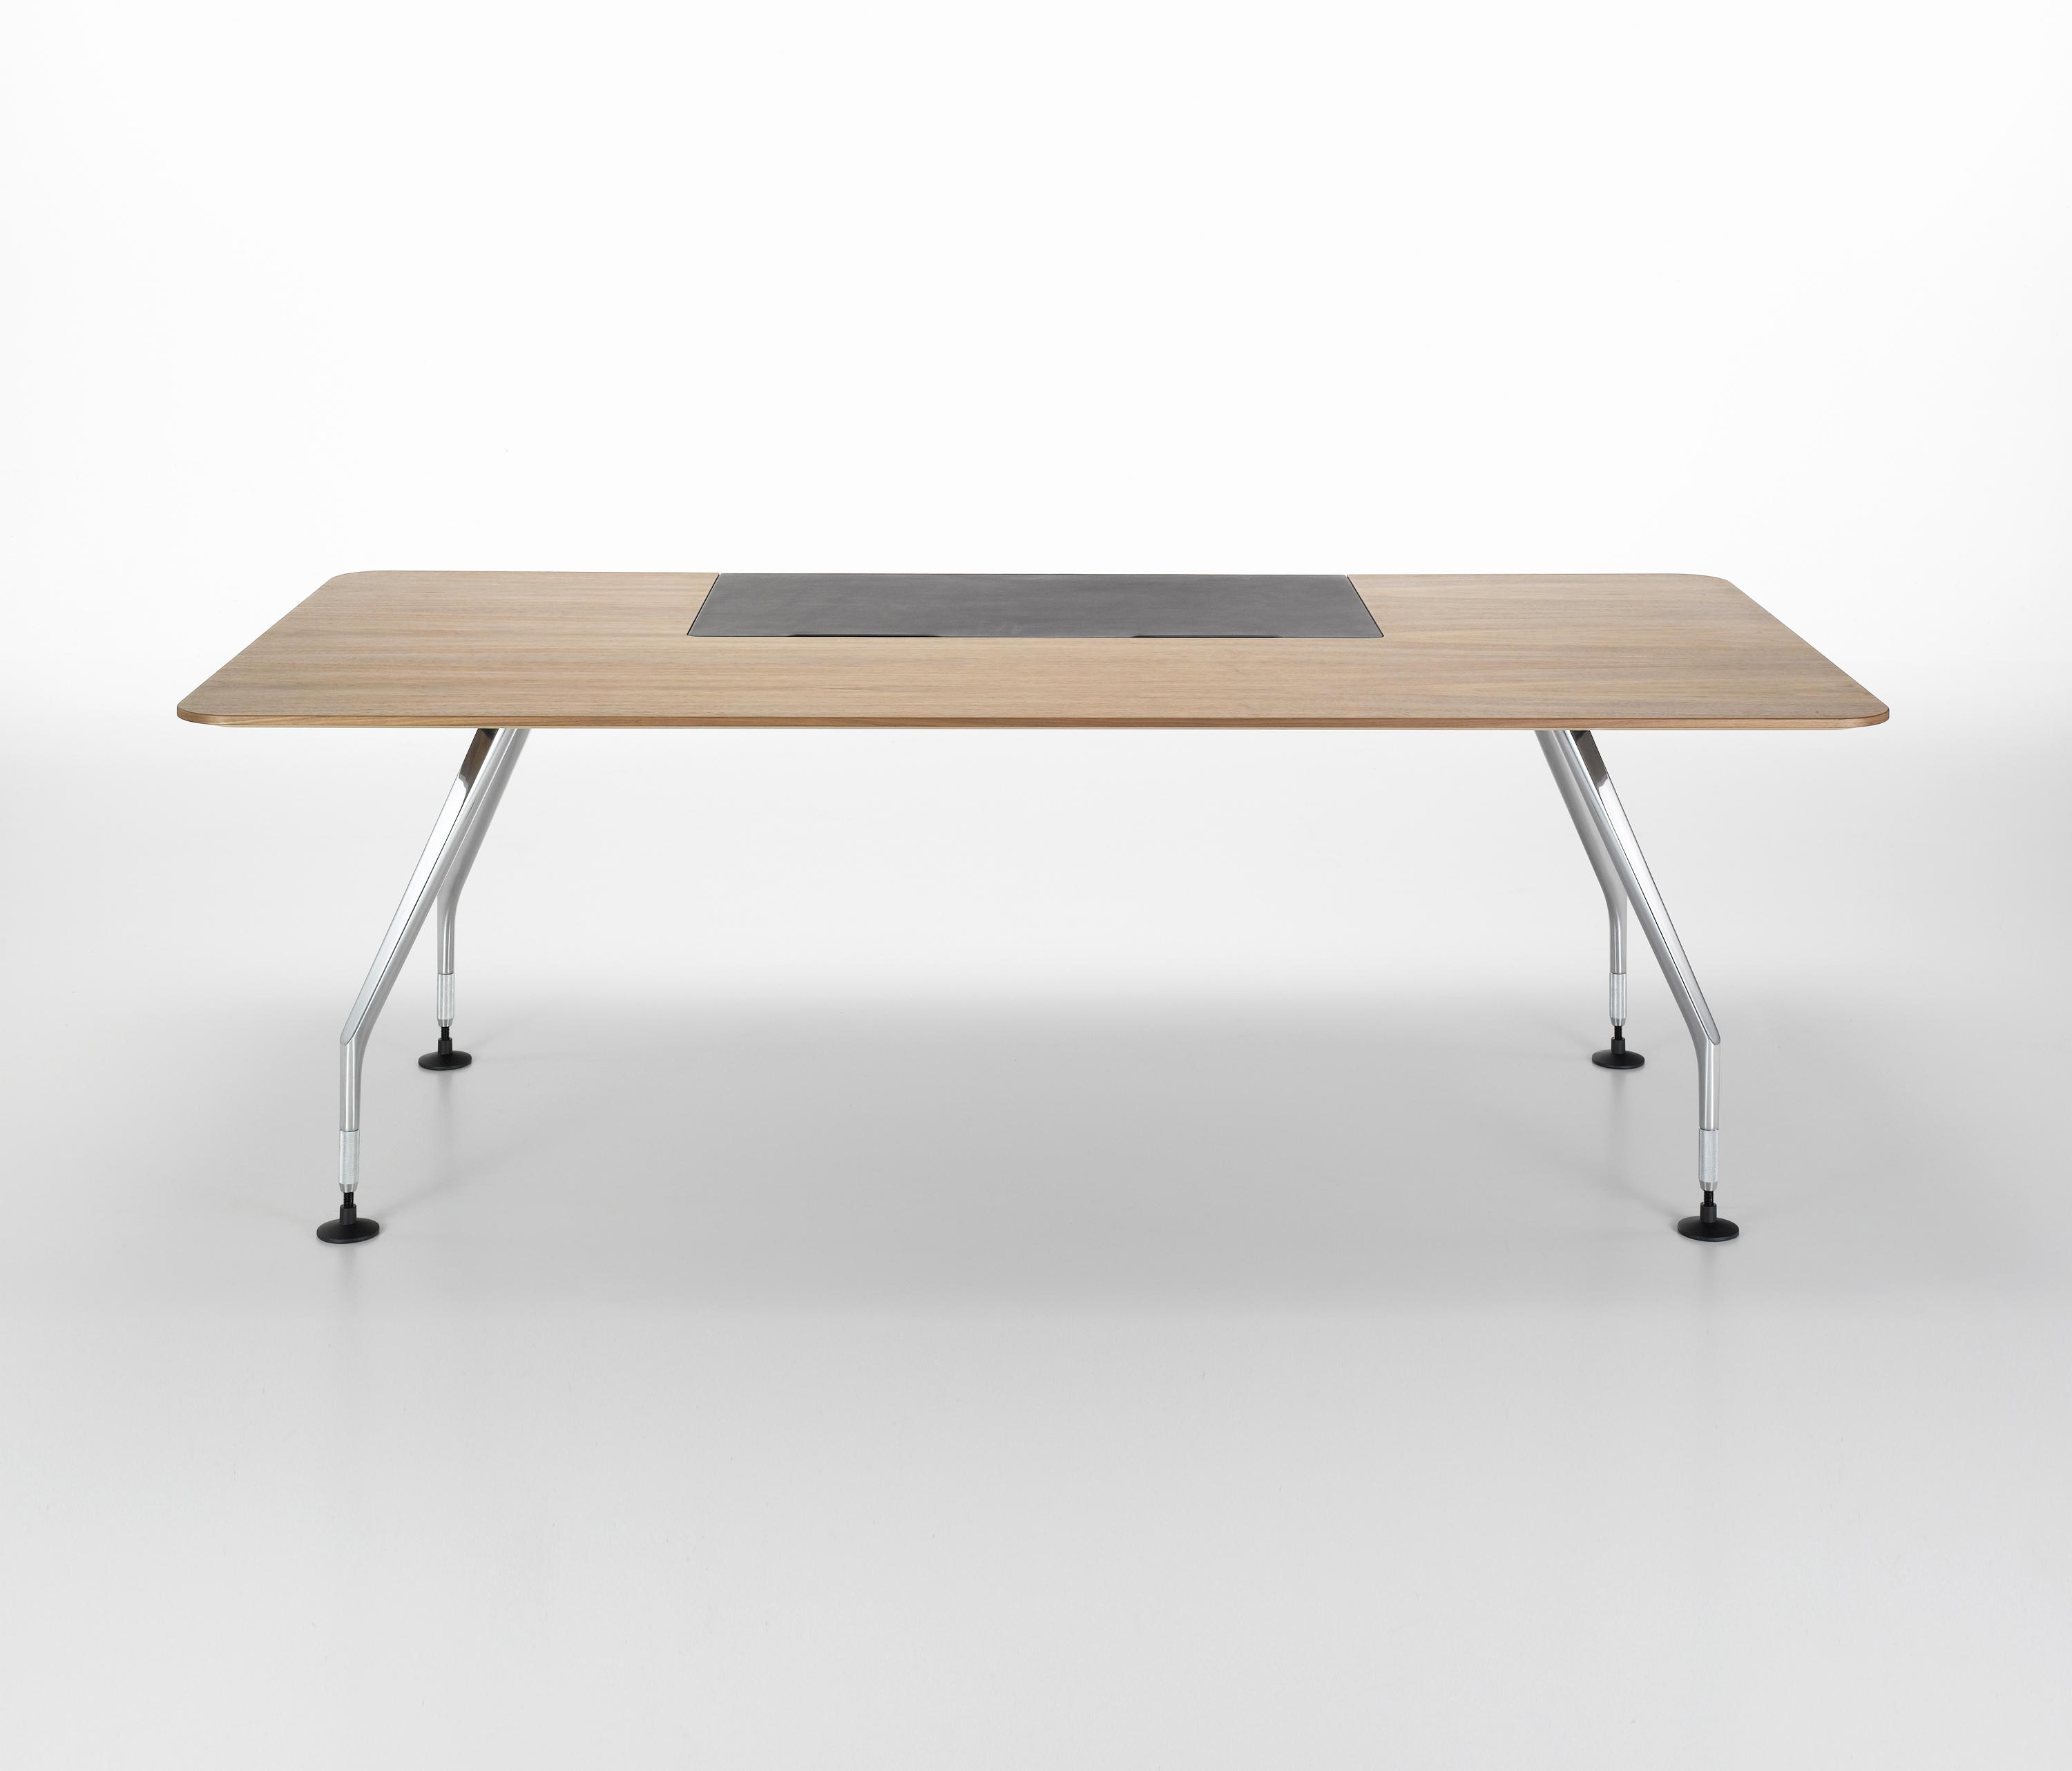 ad hoc executive table individual desks from vitra. Black Bedroom Furniture Sets. Home Design Ideas